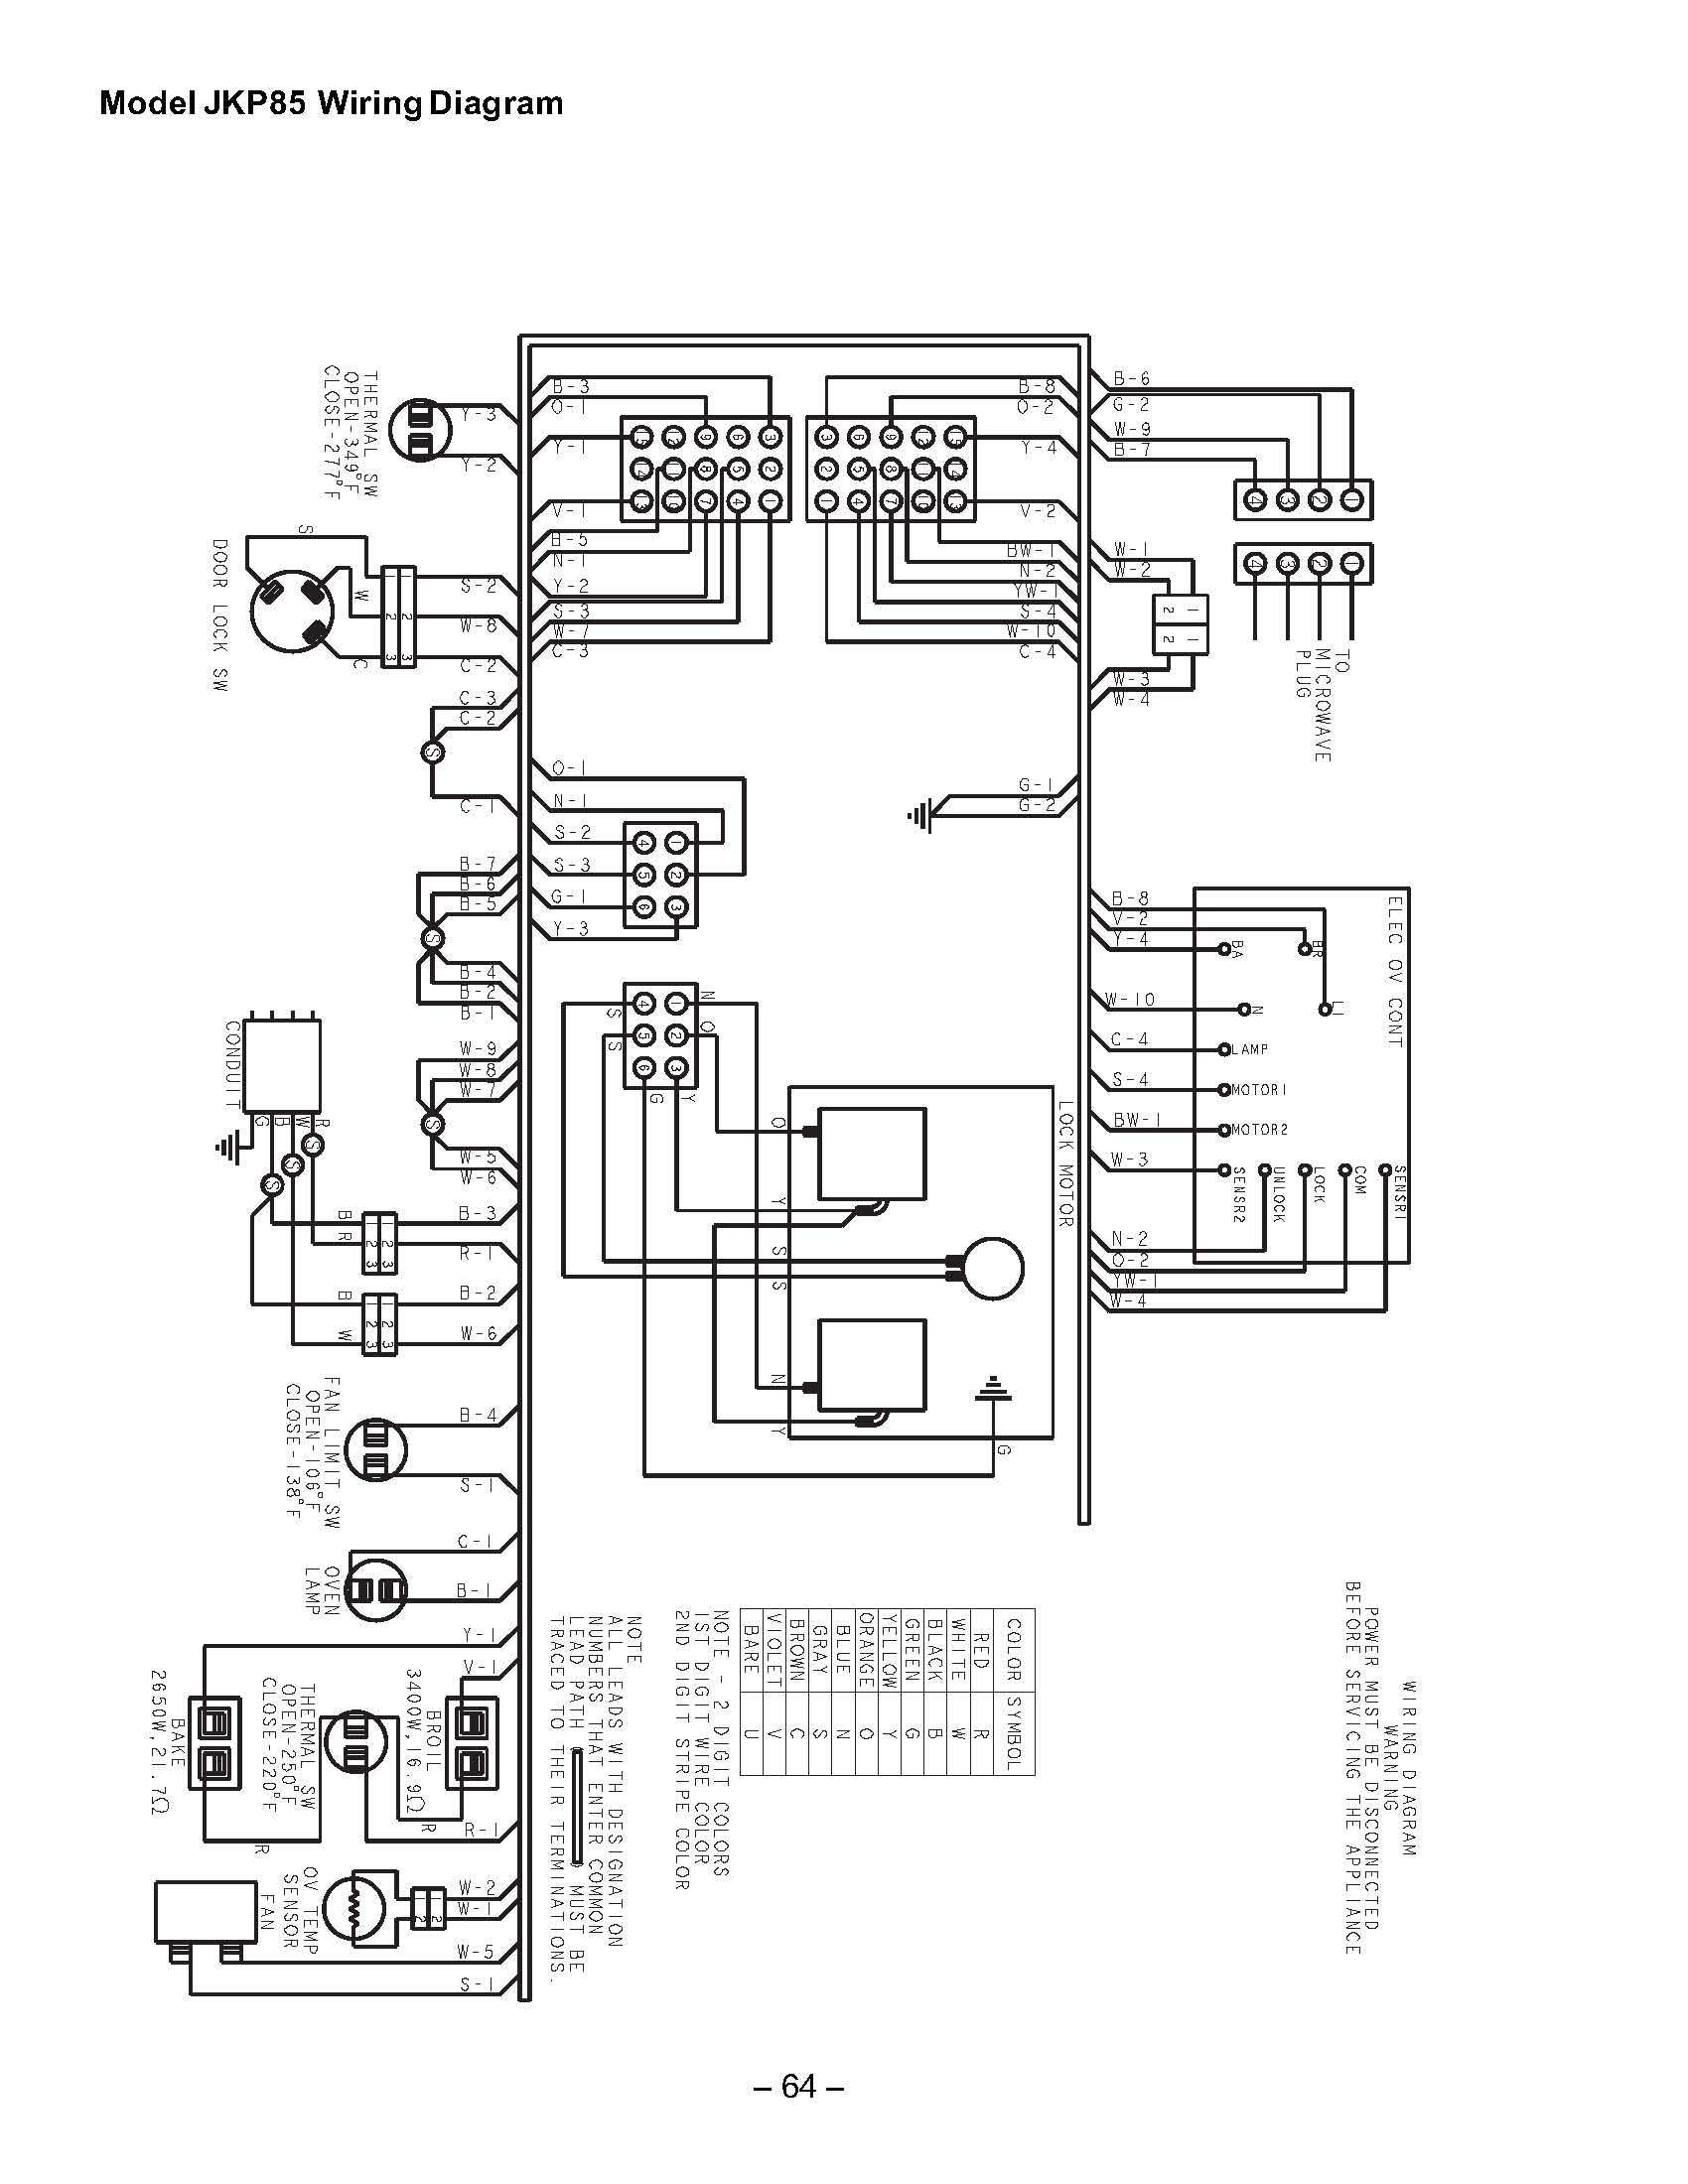 1999 ford e350 stereo wiring diagram  | 645 x 768